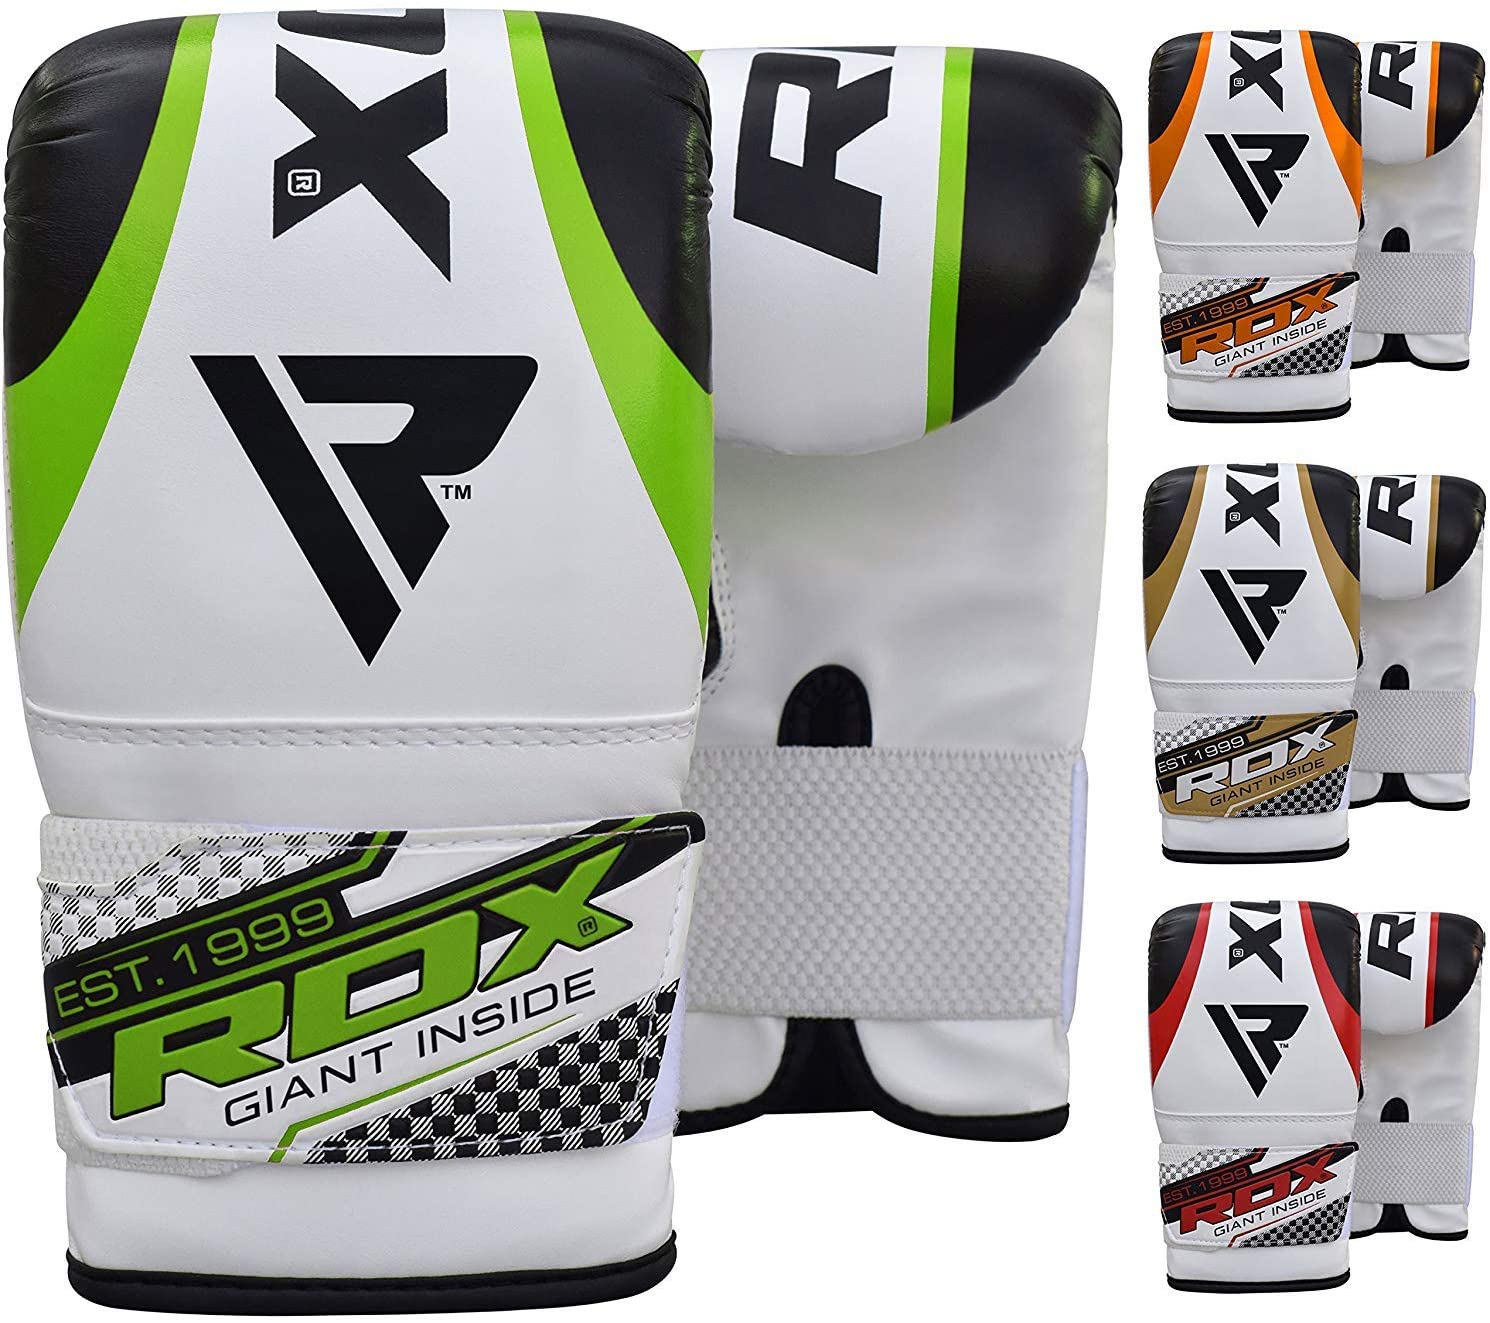 RDX Punching Gloves for Heavy Punch Bag, Maya Hide Leather Muay Thai, Kickboxing, MMA, Martial Arts Workout Mitts, Great for Focus Pads, Thai Pads, Double End Speed Ball, Grappling Dummy Training